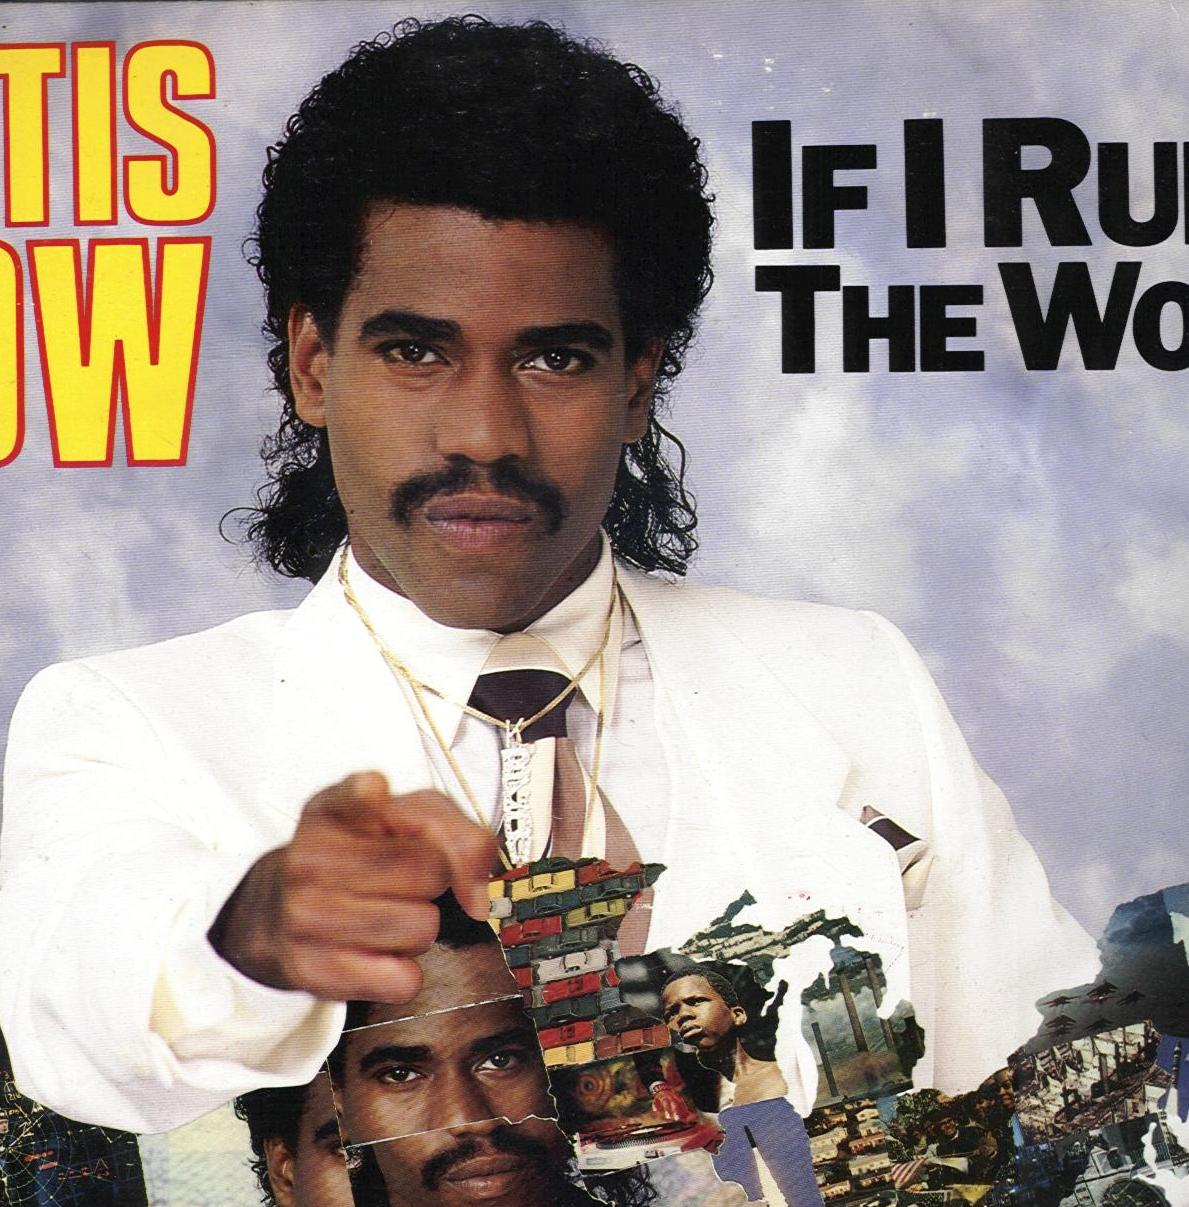 Kurtis Blow's quote #5